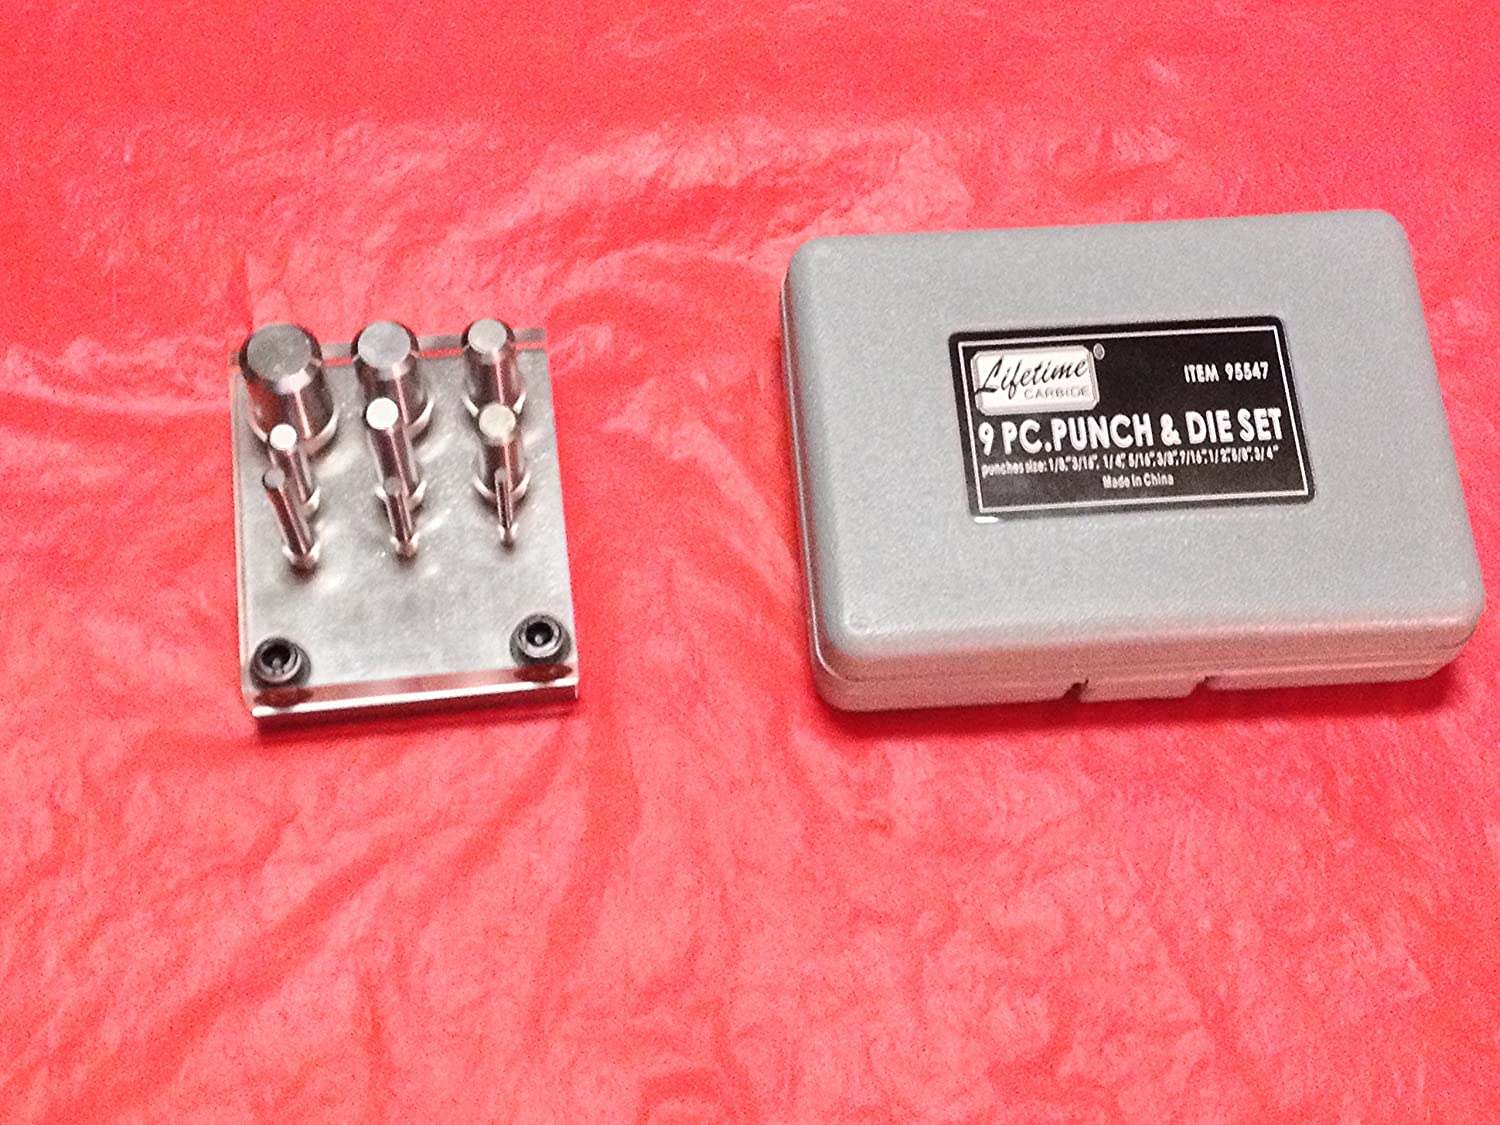 New 9 Piece Punch And Die Set